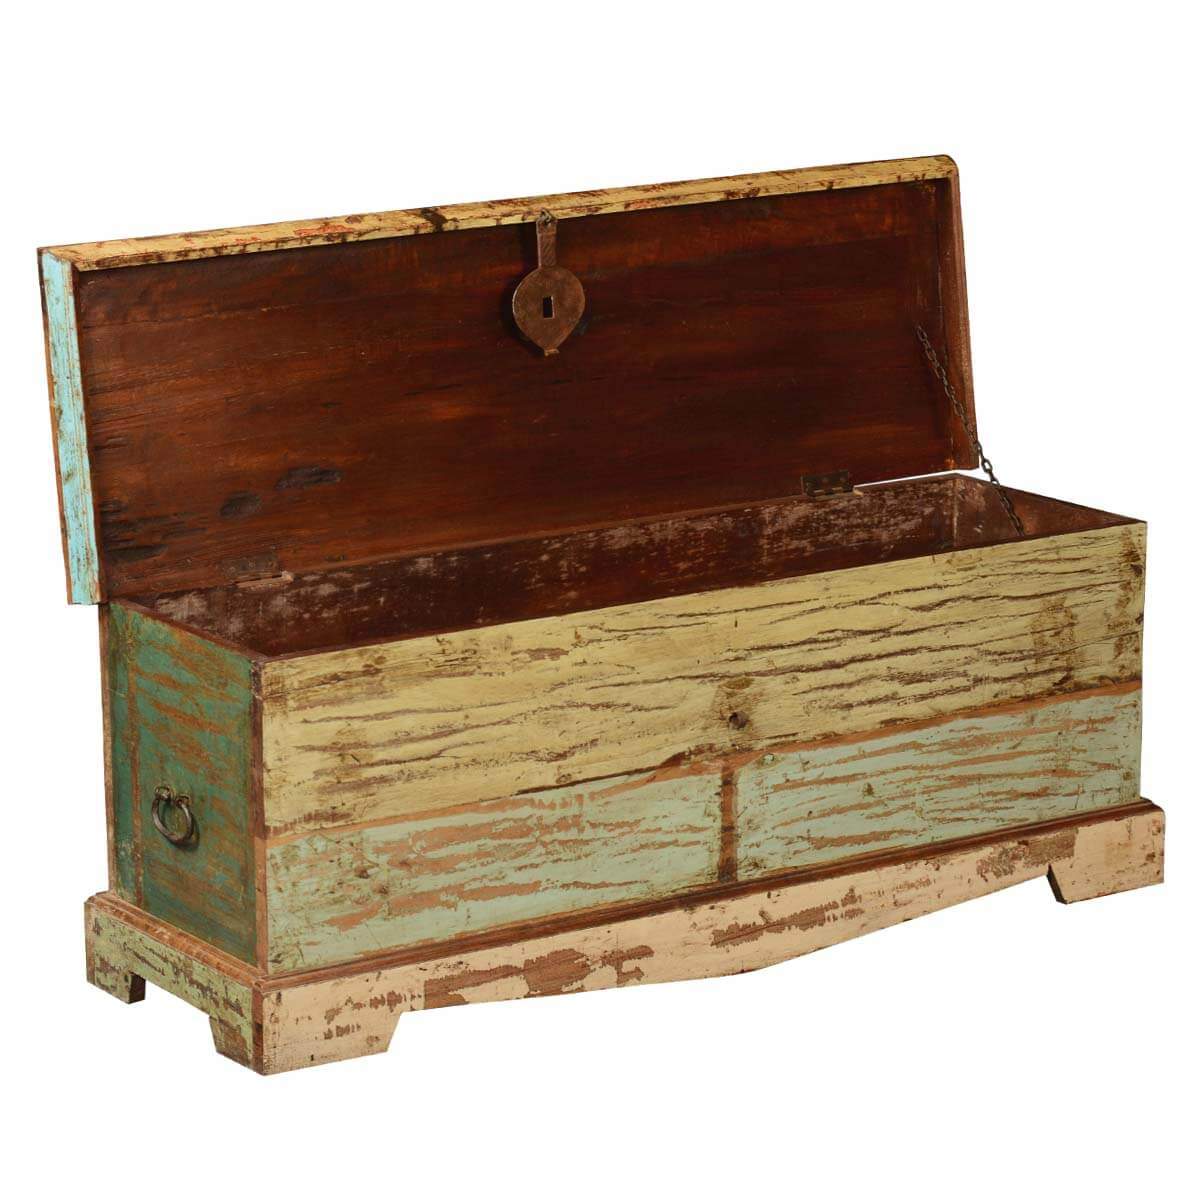 Wood Coffee Table With Storage Attic Treasure Reclaimed Wood Coffee Table Chest Storage Trunk